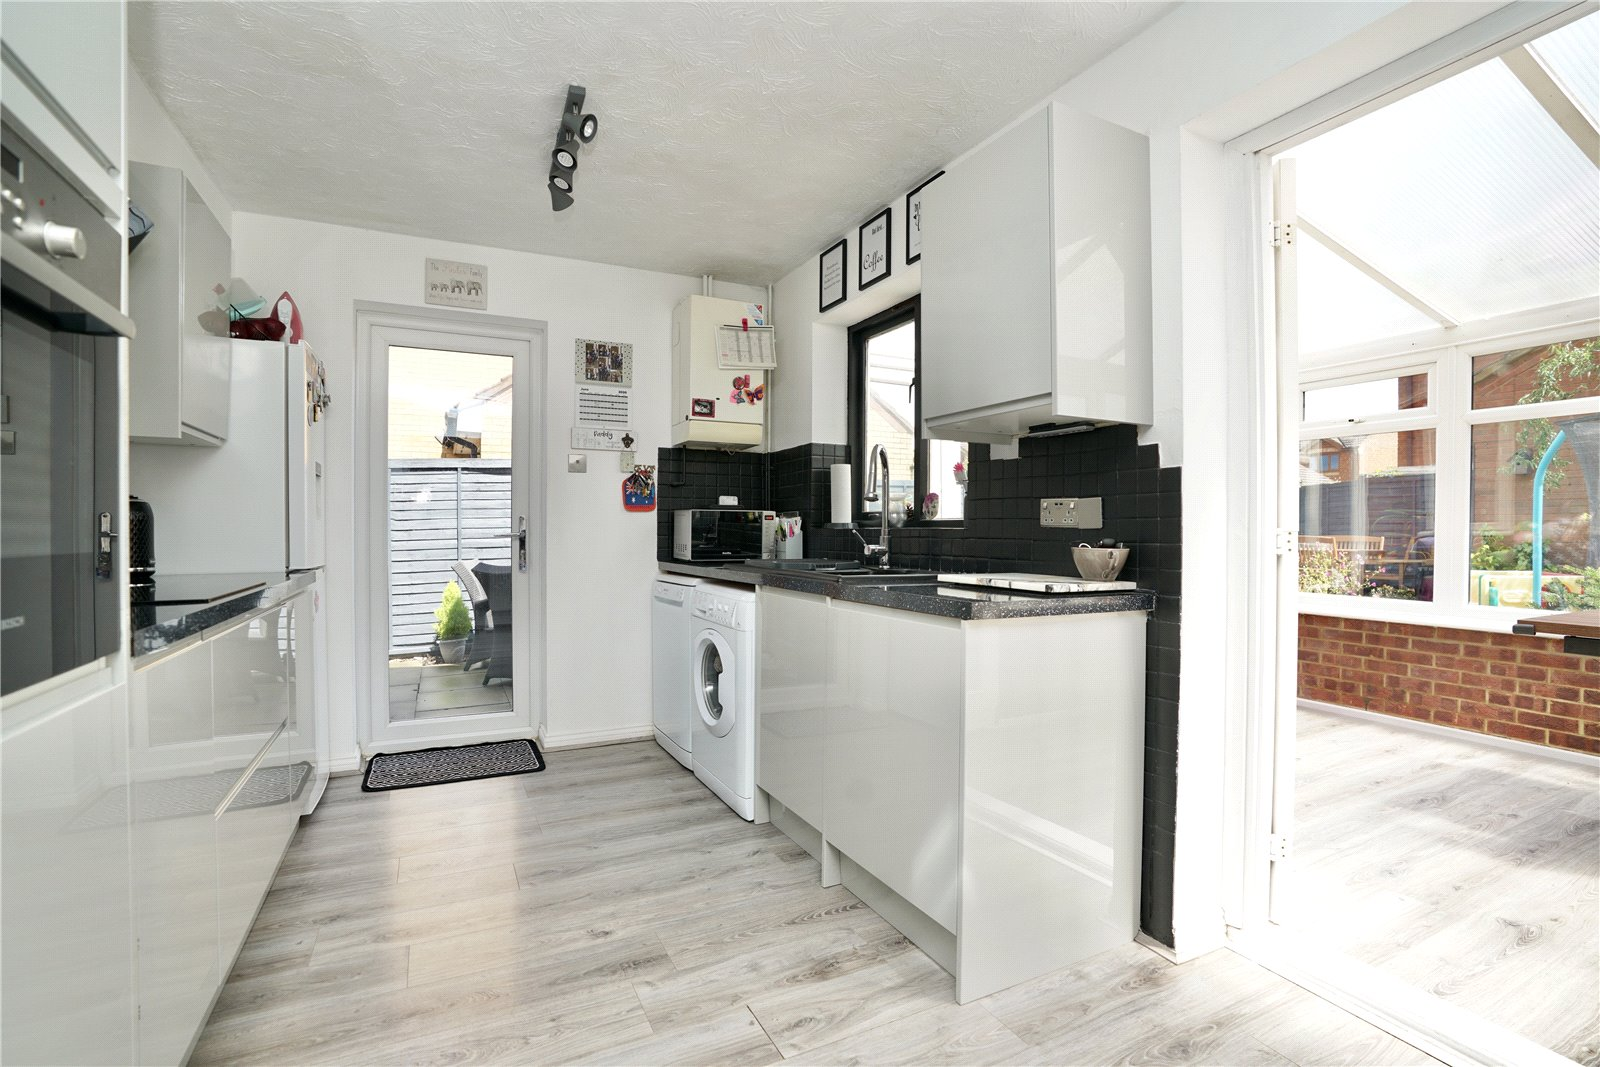 3 bed house for sale in Swift Close, St. Neots  - Property Image 6